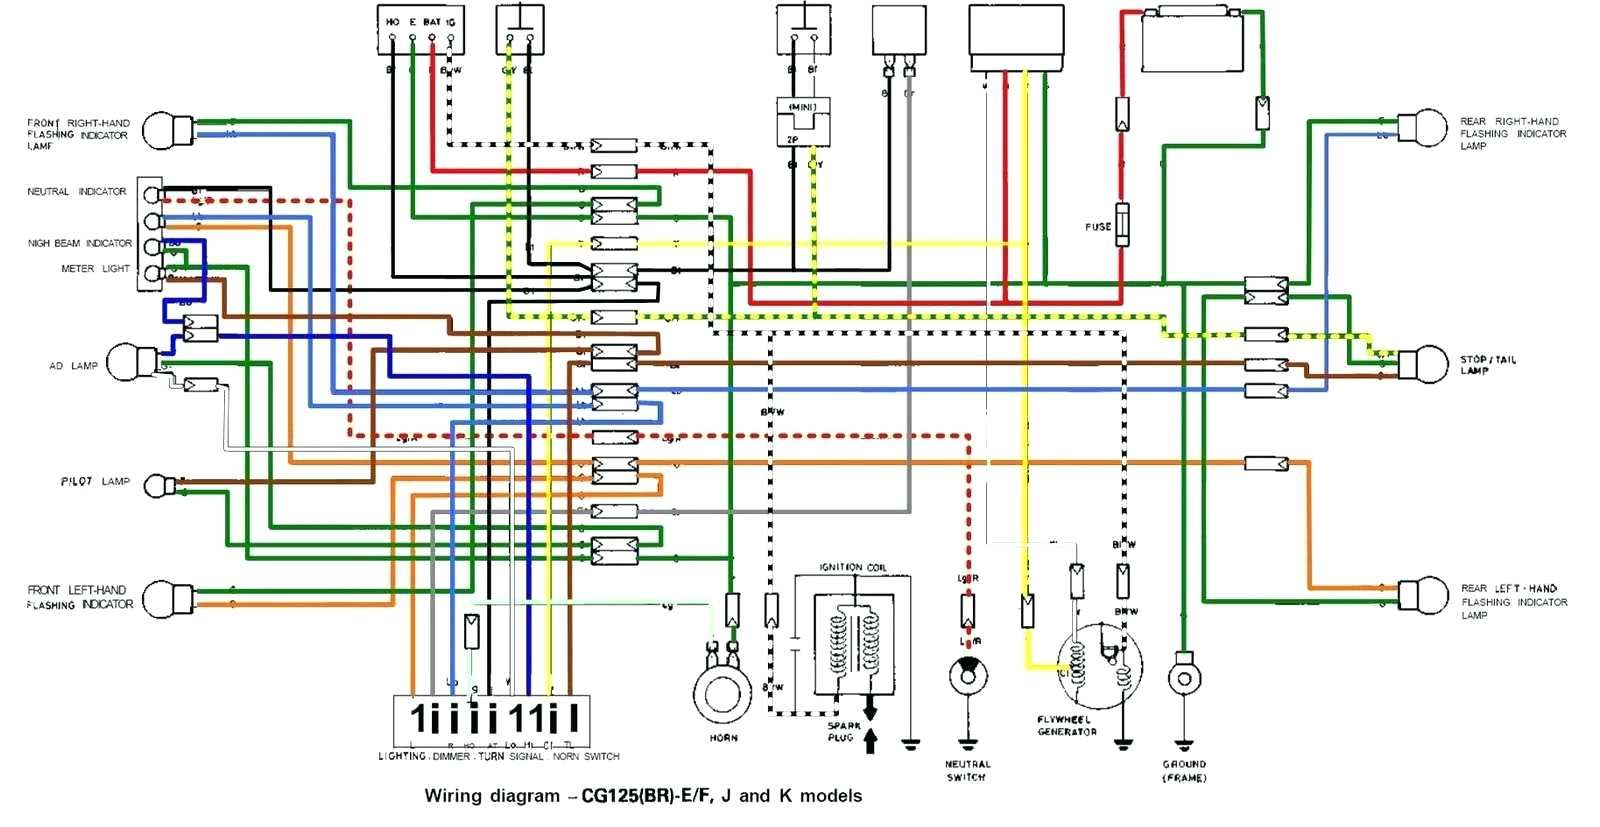 honda 125 motorcycle ignition wiring wiring diagram toolbox honda 125cc wiring diagram honda 125cc wiring [ 1600 x 827 Pixel ]